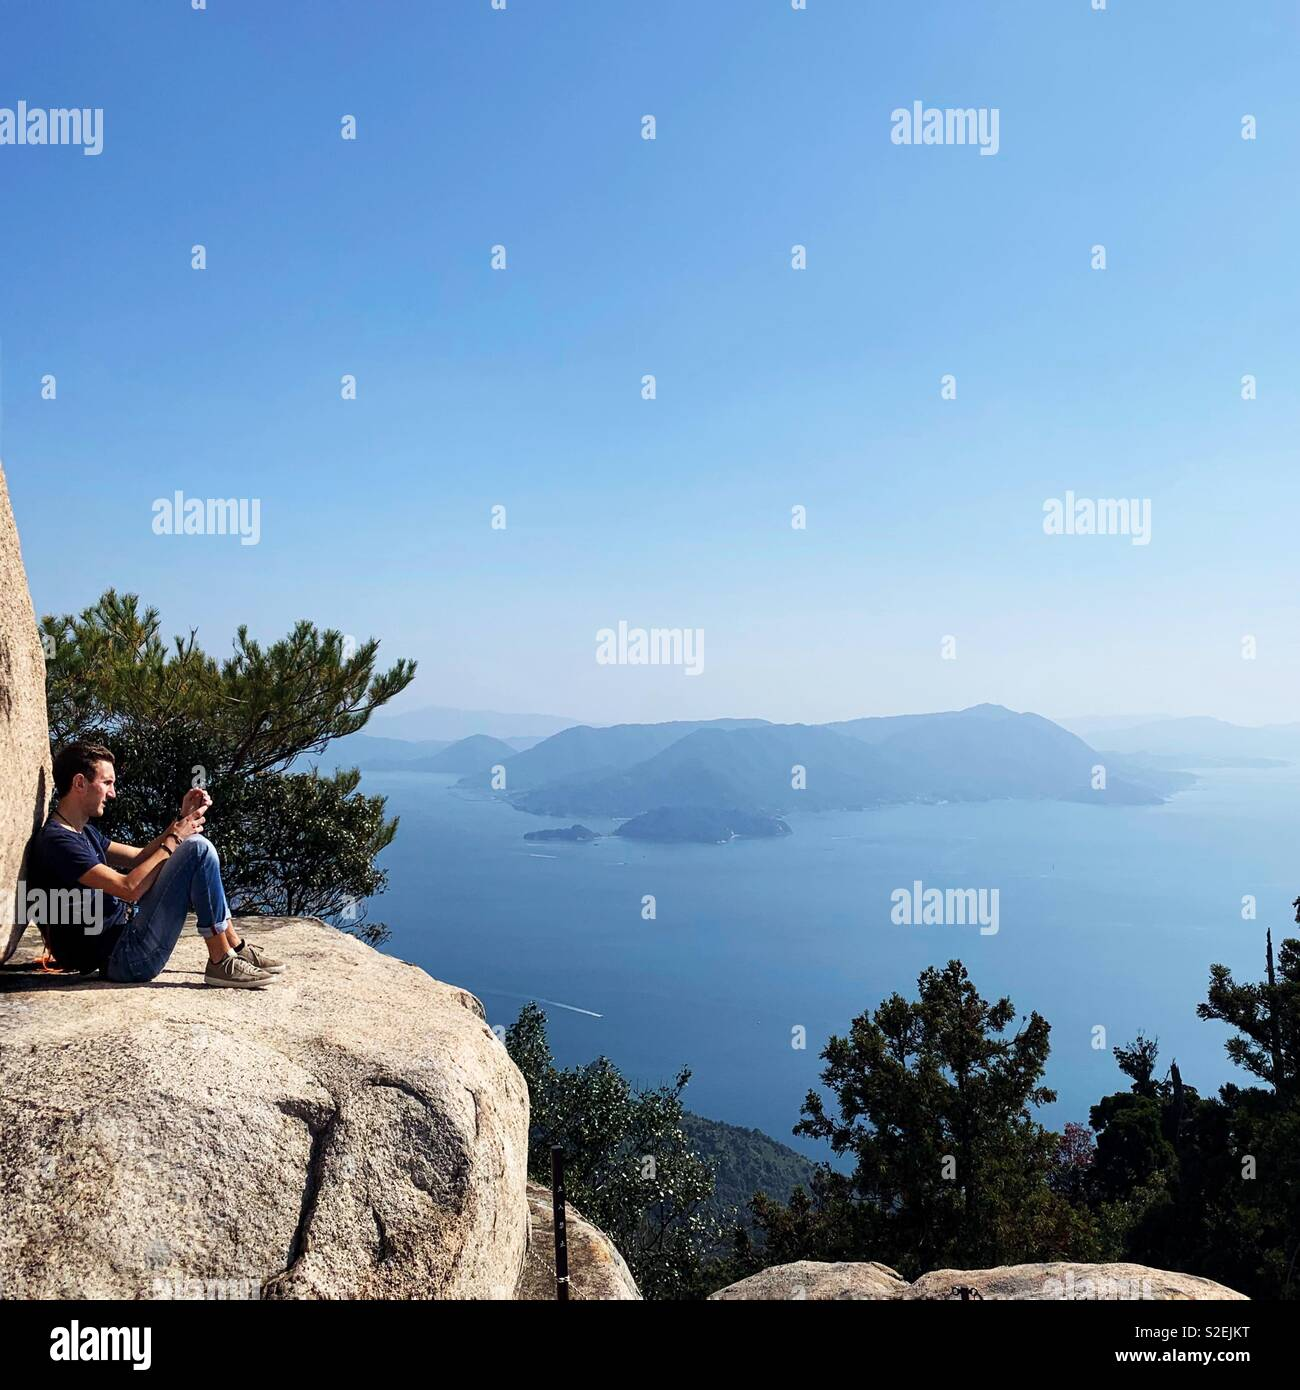 Traveller resting on top of Mount Misen, Miyajima, Japan - Stock Image